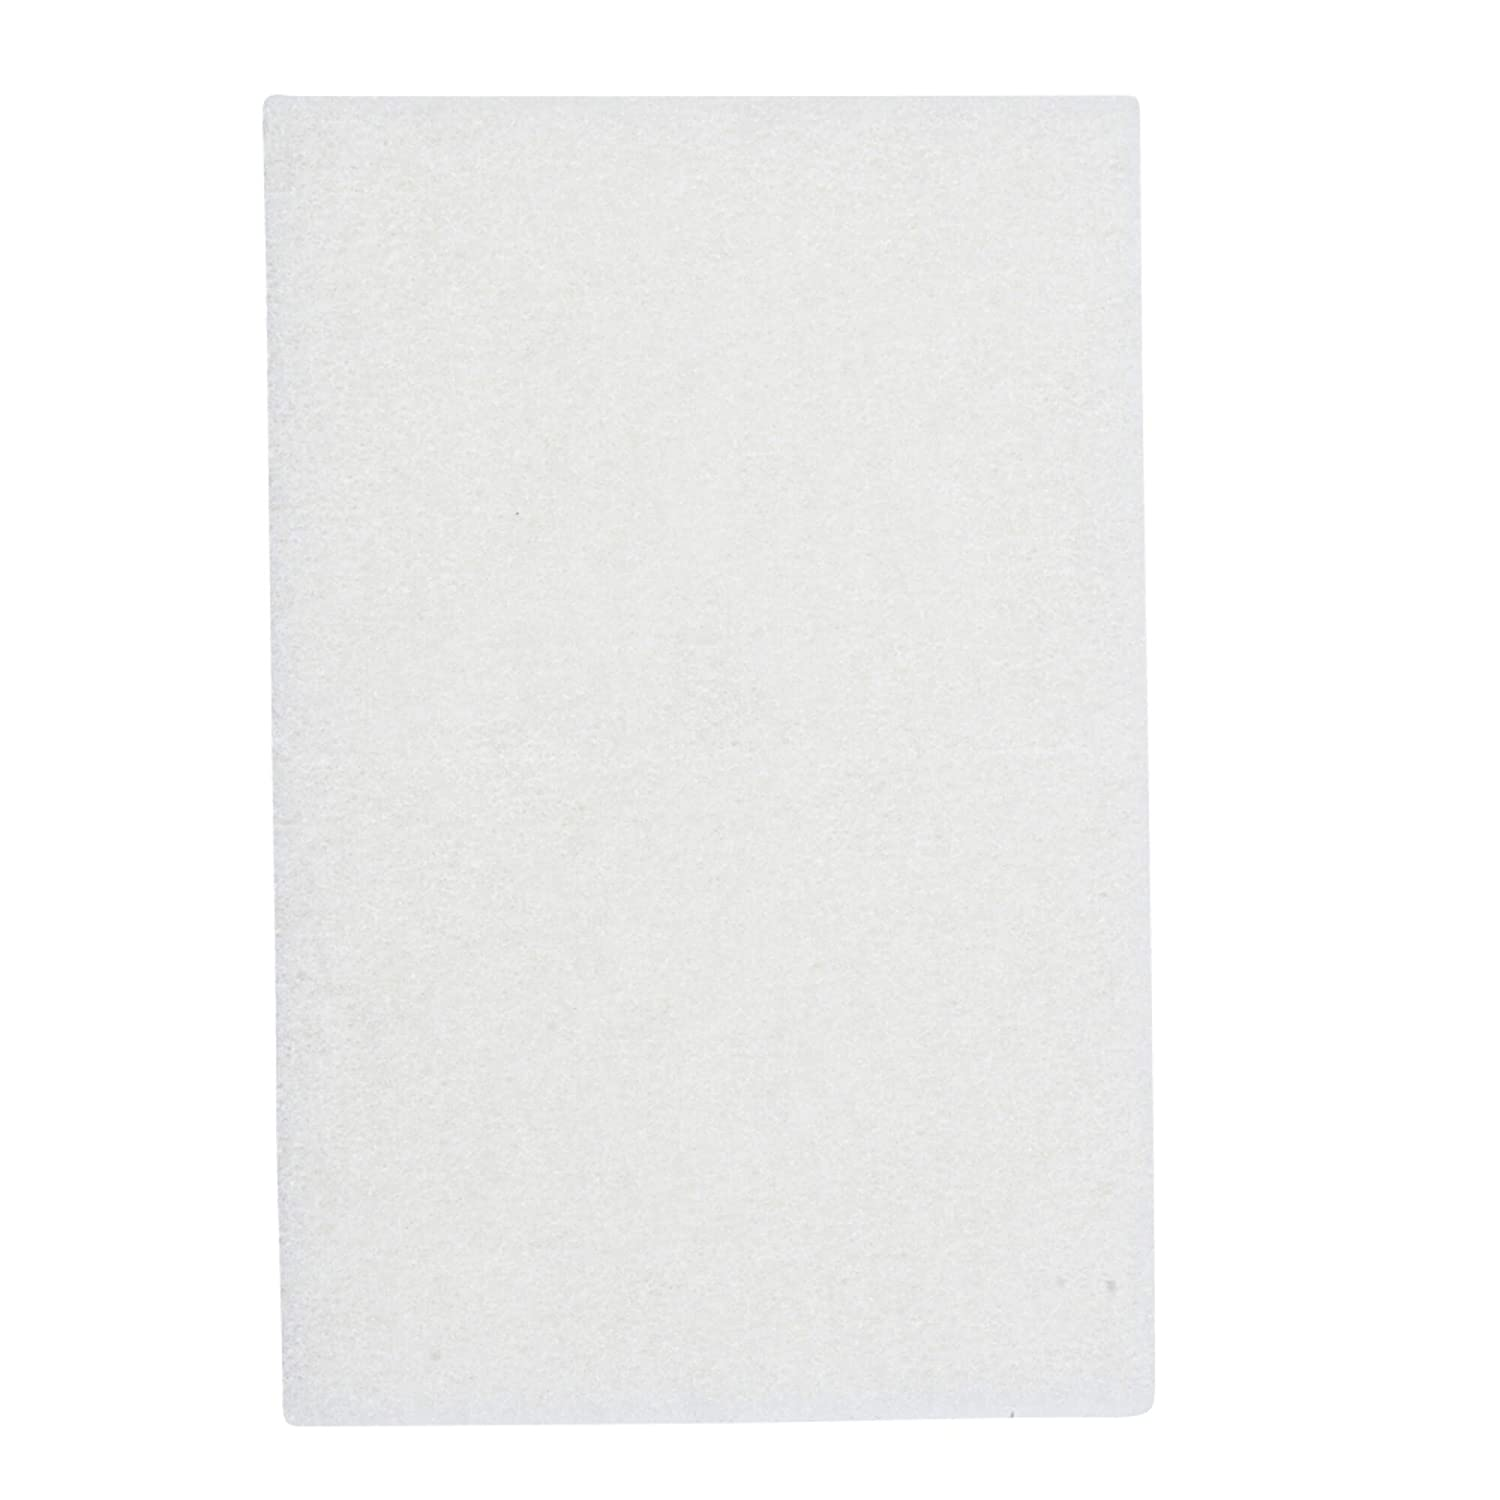 6X9 NON-ABRASIVE LIGHT DUTY BX 10 PAD Very popular Max 58% OFF CLEANING